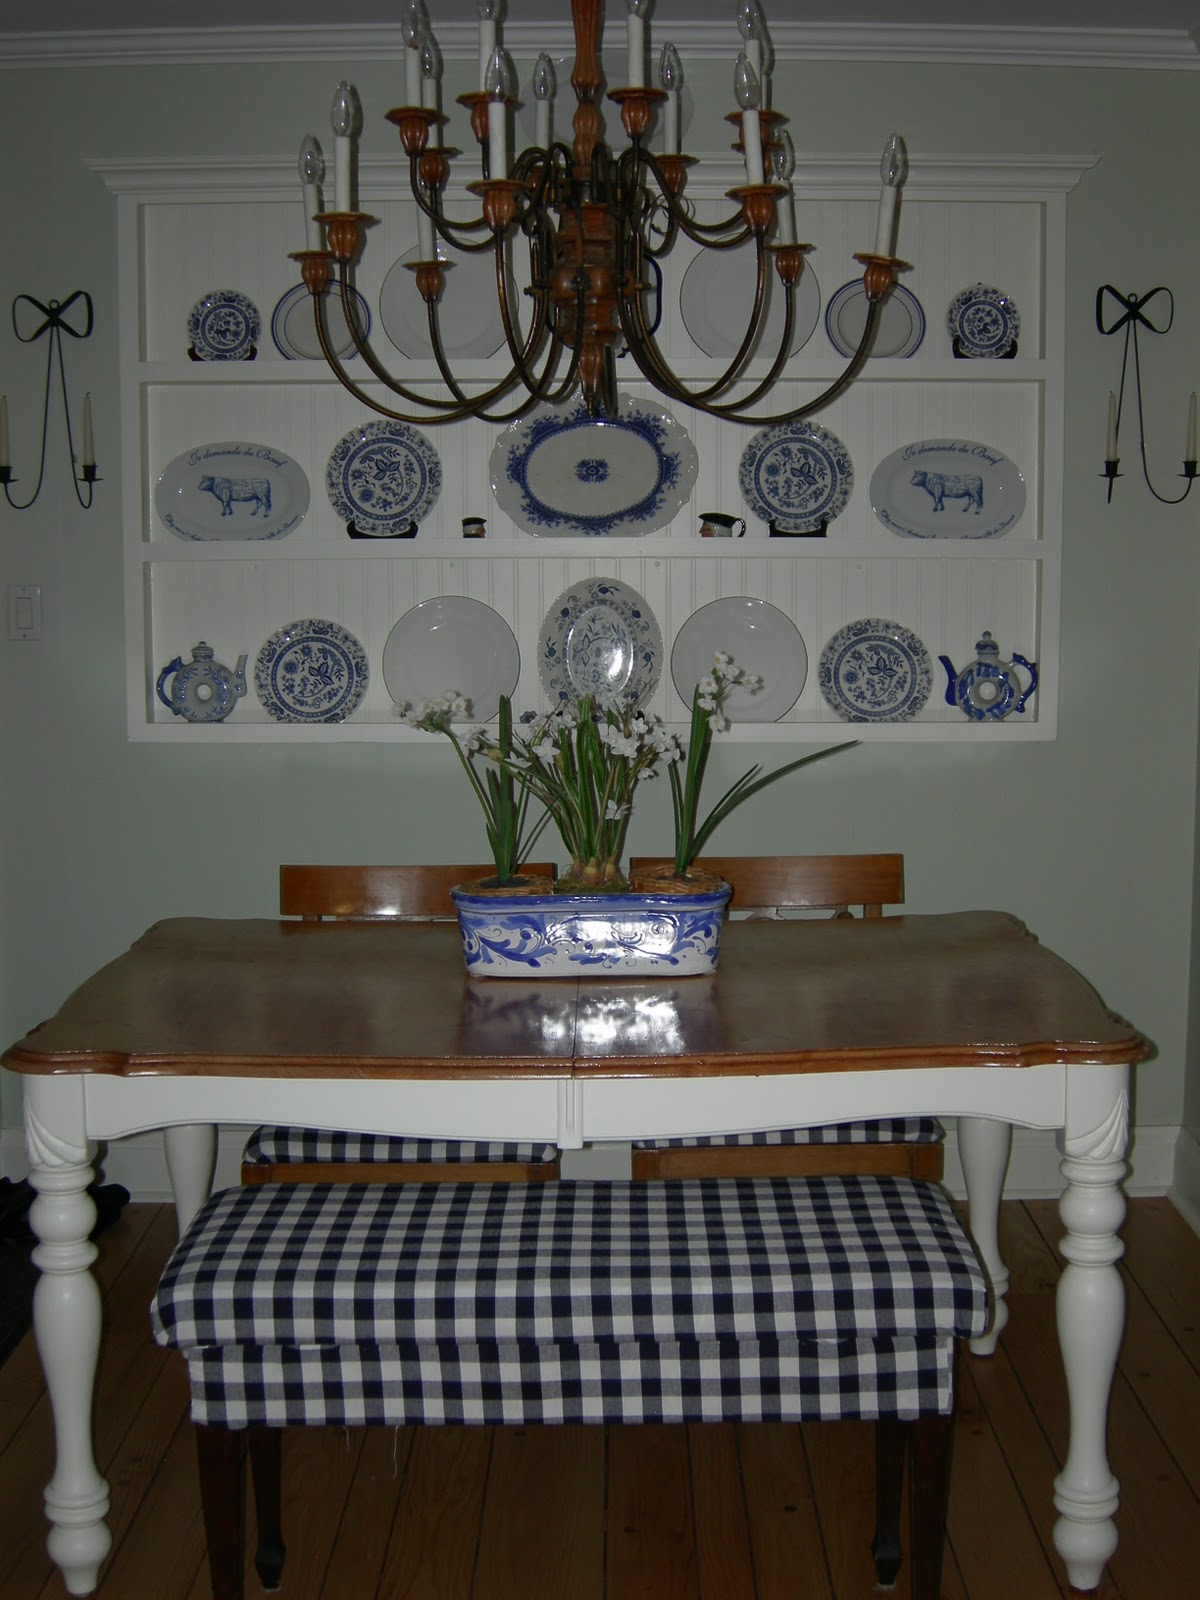 How To Display Bowls Pineapple Lane French County Inspired Wall Plate Rack